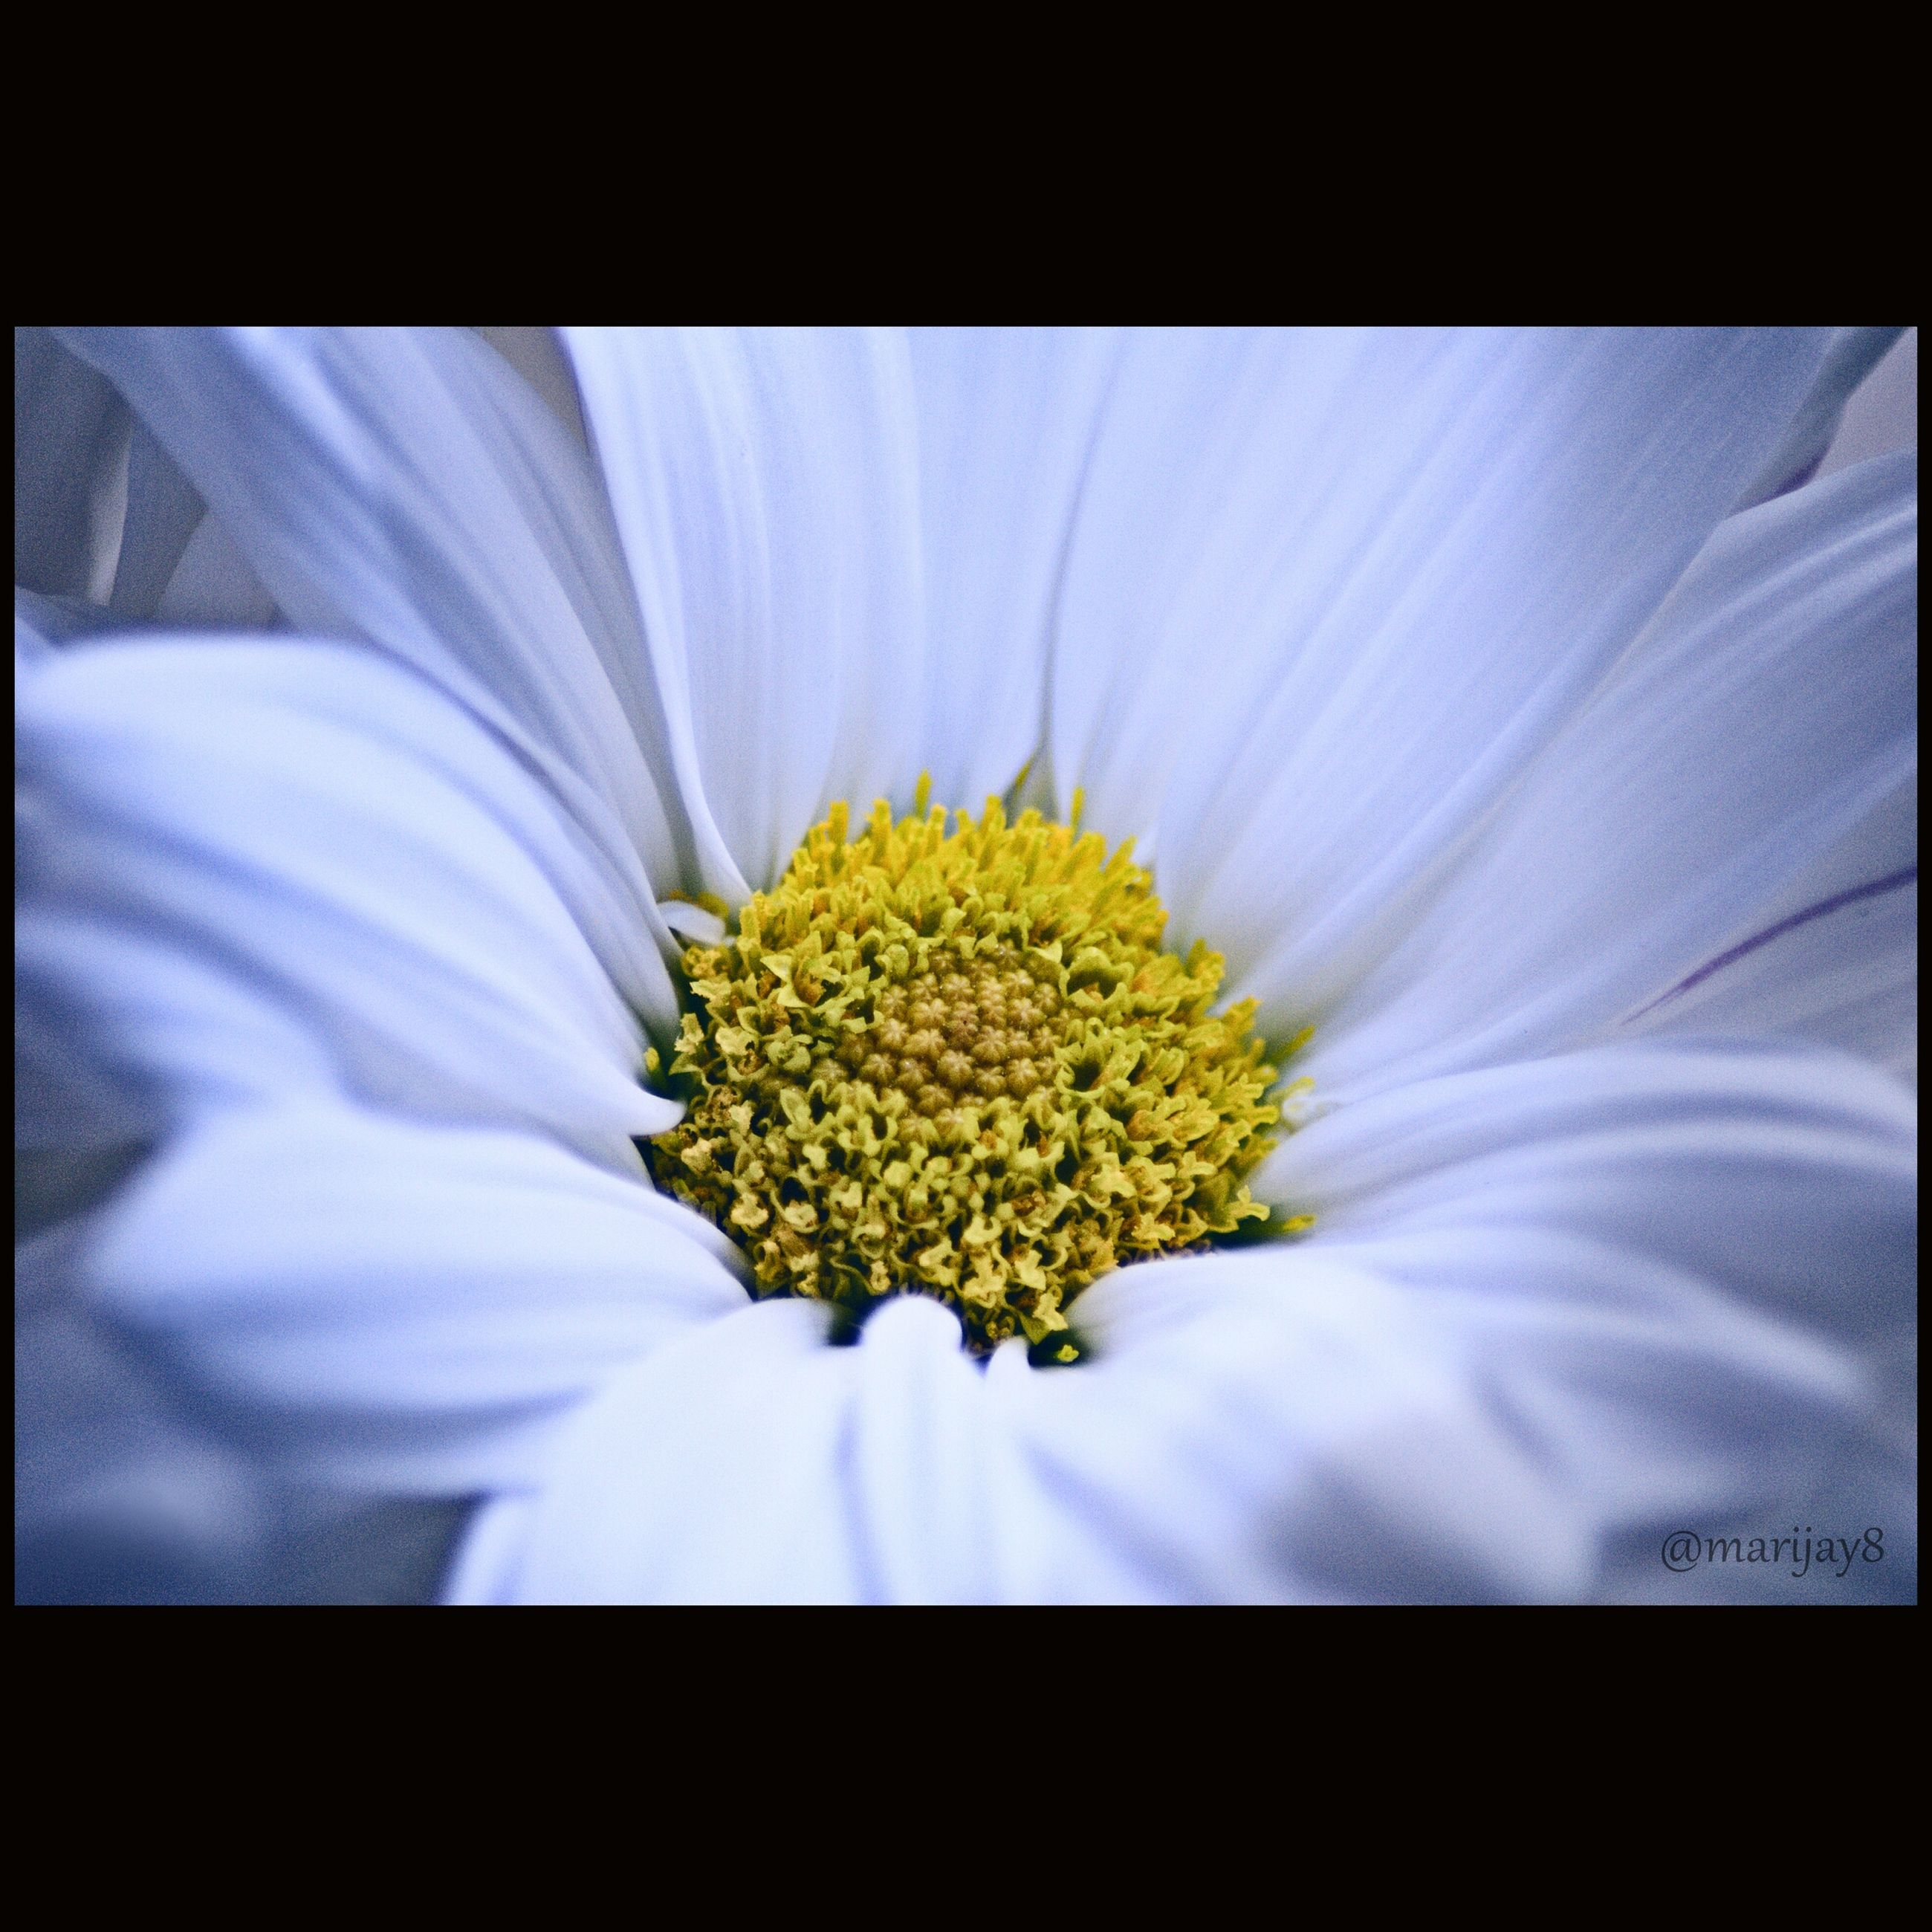 flower, petal, flower head, freshness, fragility, transfer print, pollen, single flower, beauty in nature, yellow, auto post production filter, close-up, nature, growth, stamen, blooming, white color, daisy, selective focus, blossom